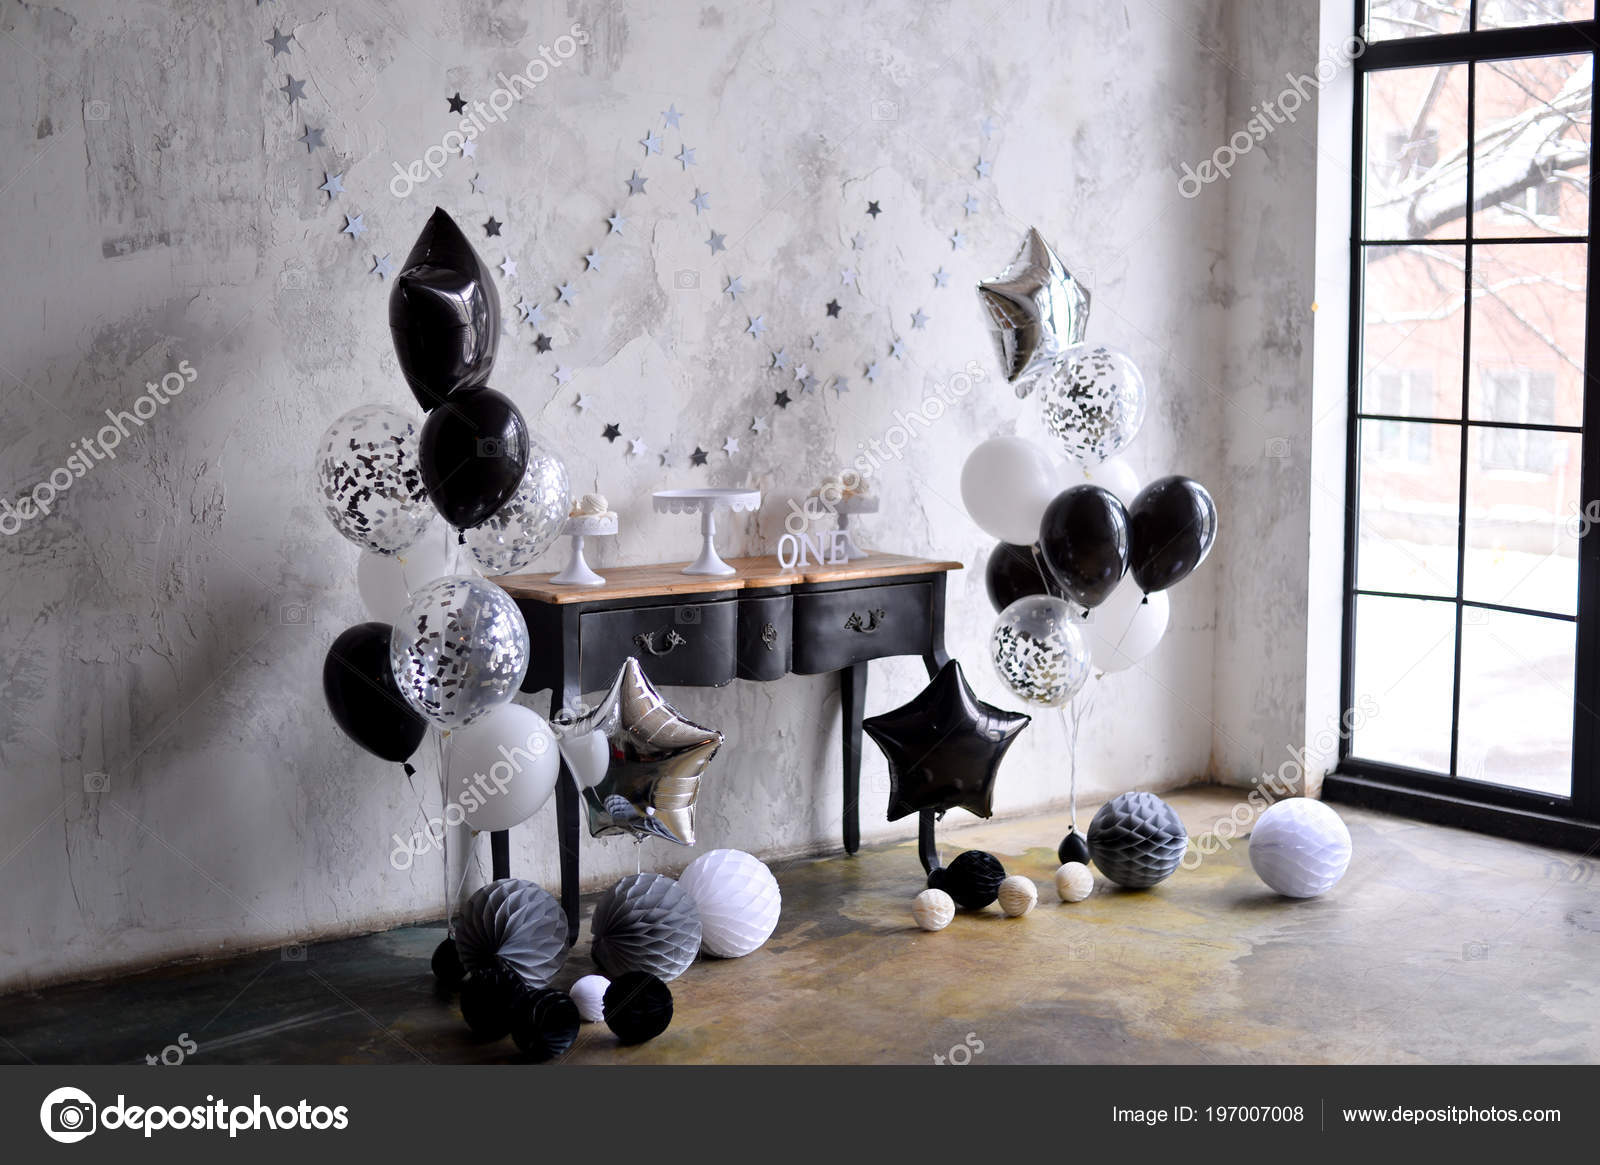 One Year Birthday Decorations Ides Black And White A Lot Of Balloons Colors Cake For Holiday Party